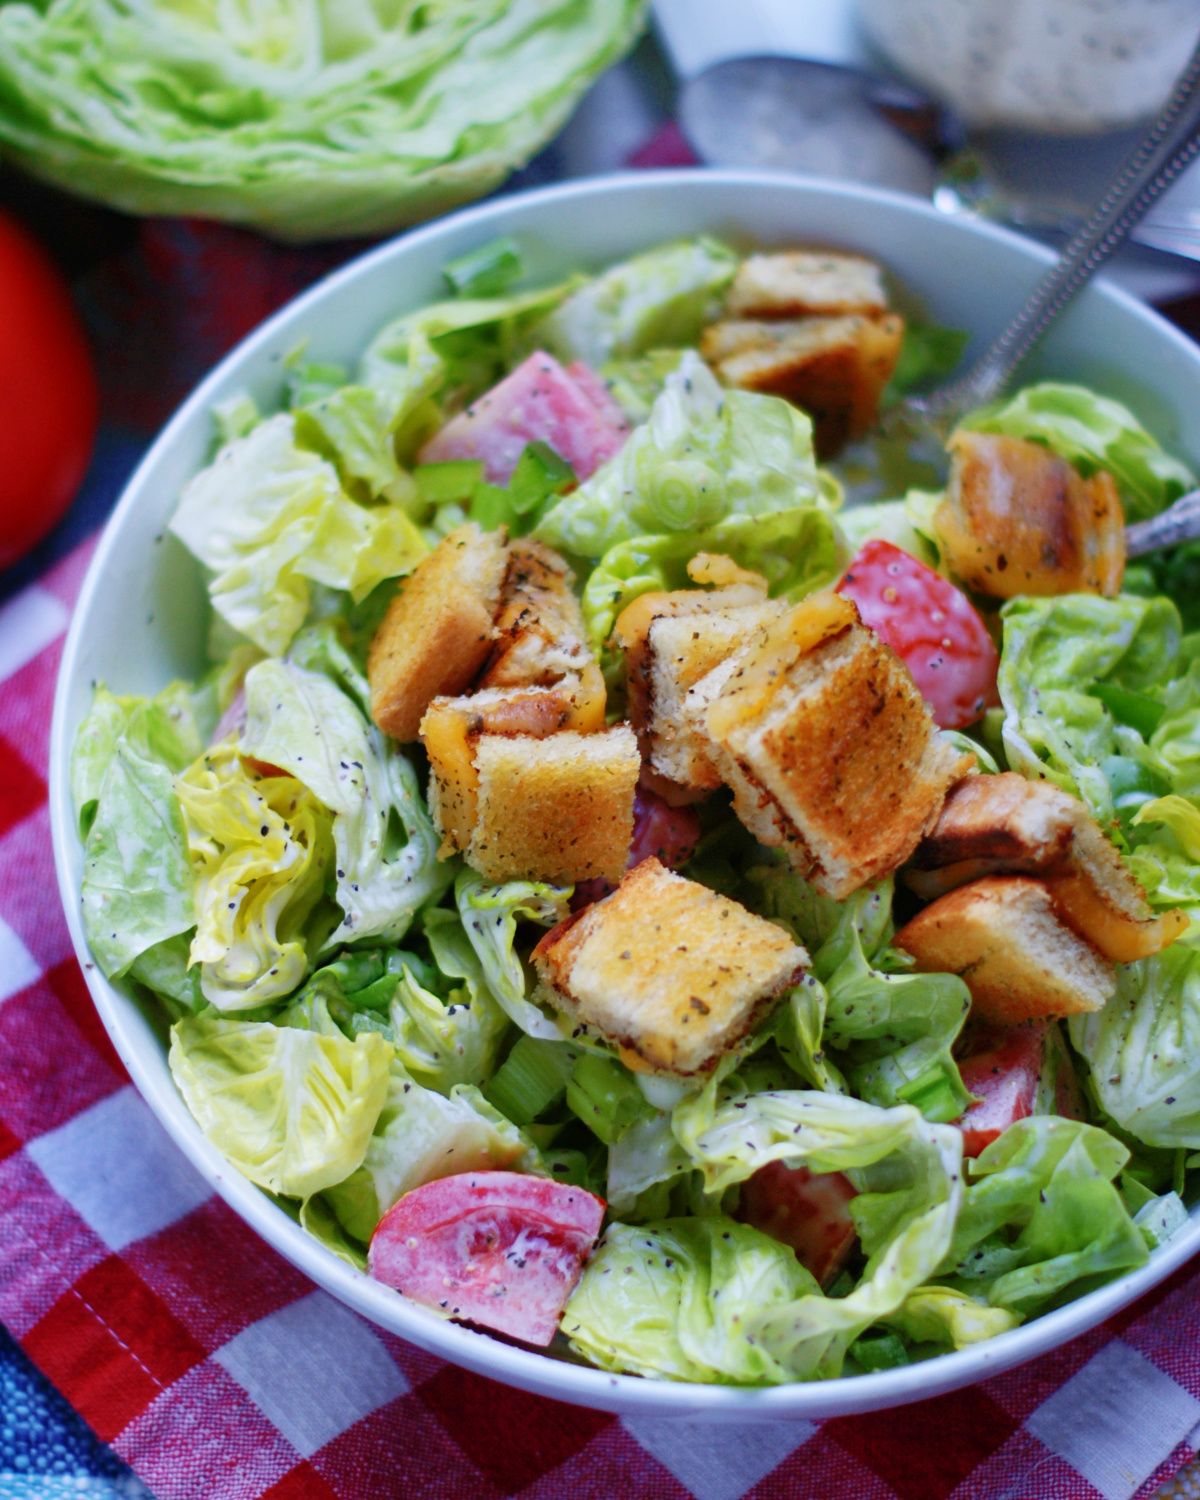 grilled cheese croutons on salad